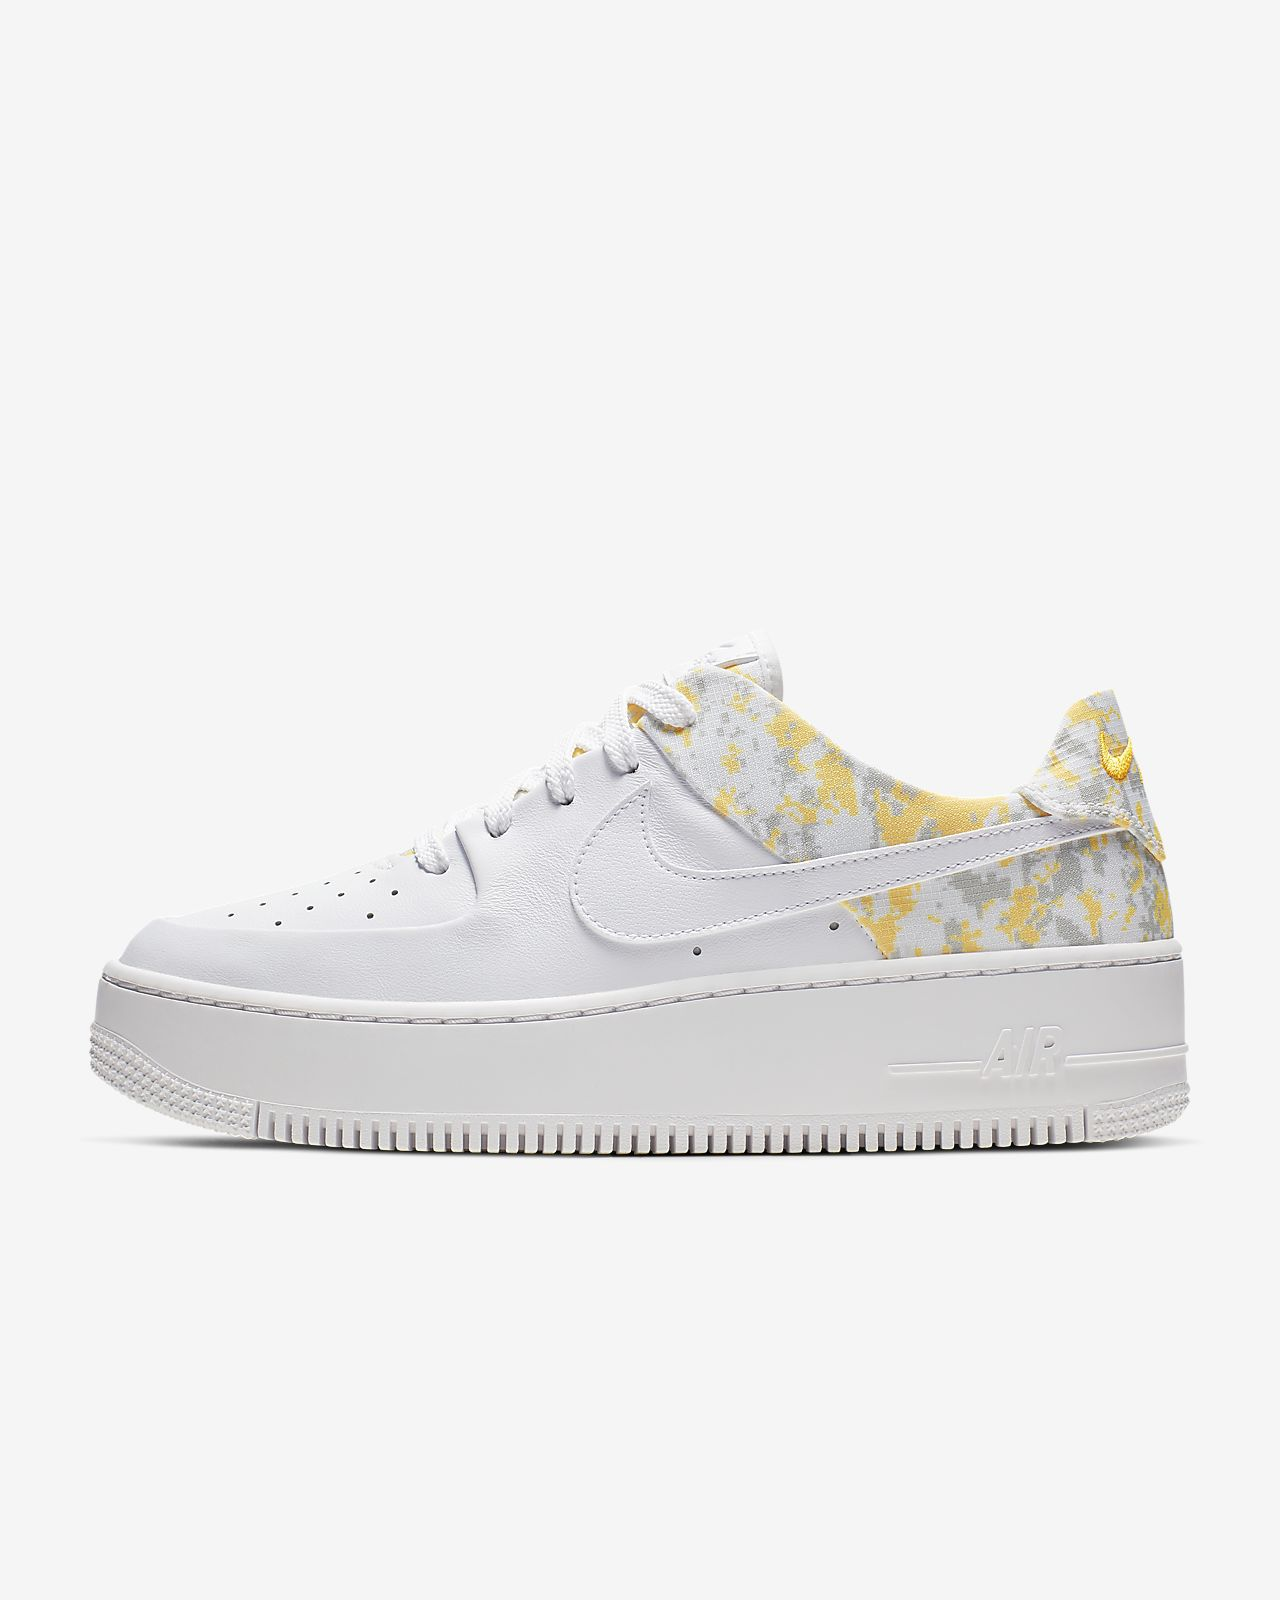 Nike Air Force 1 Sage Low Premium Camo Women's Shoe